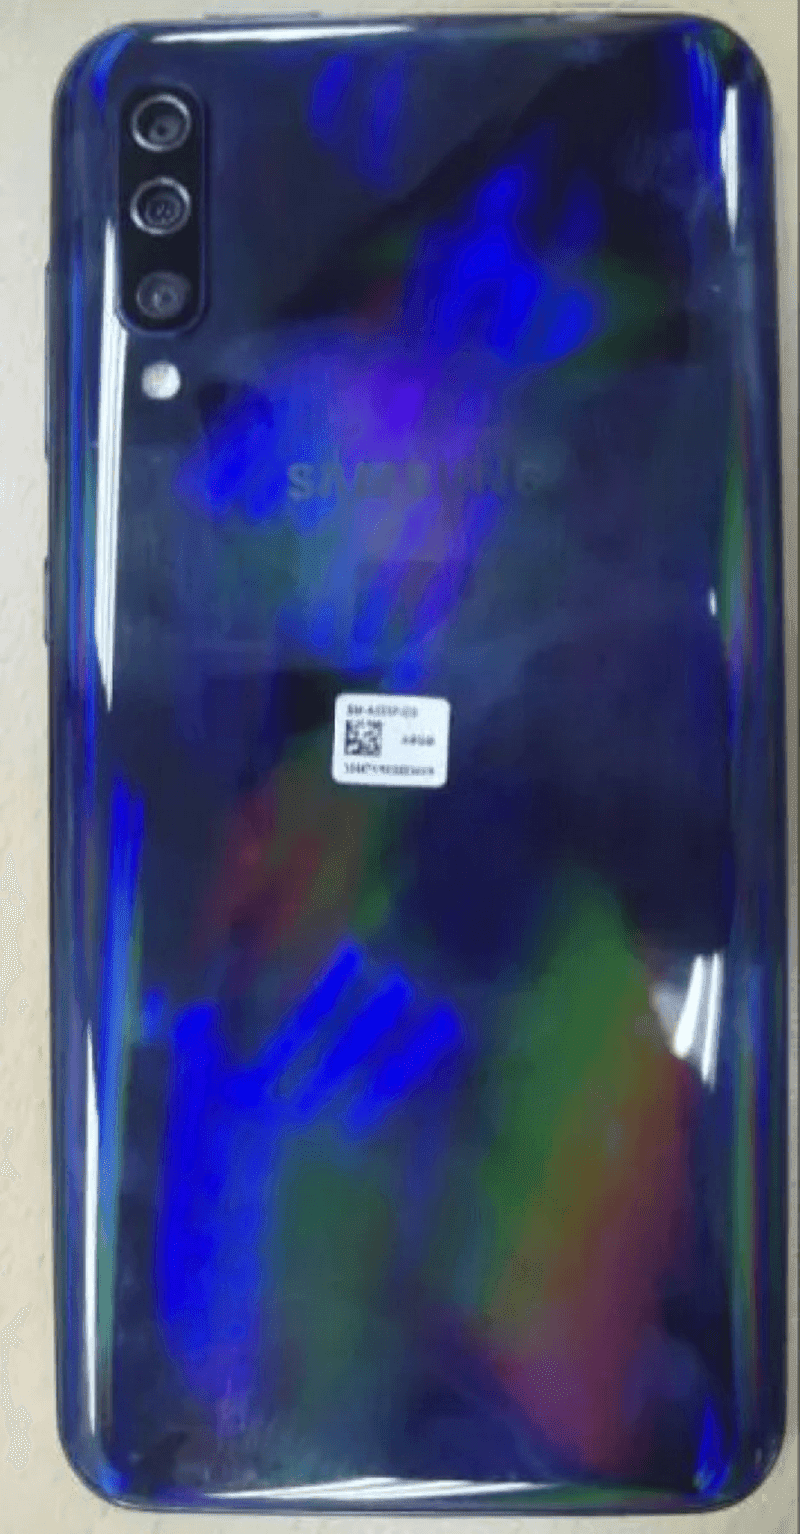 Samsung Galaxy A50 live image leaked online